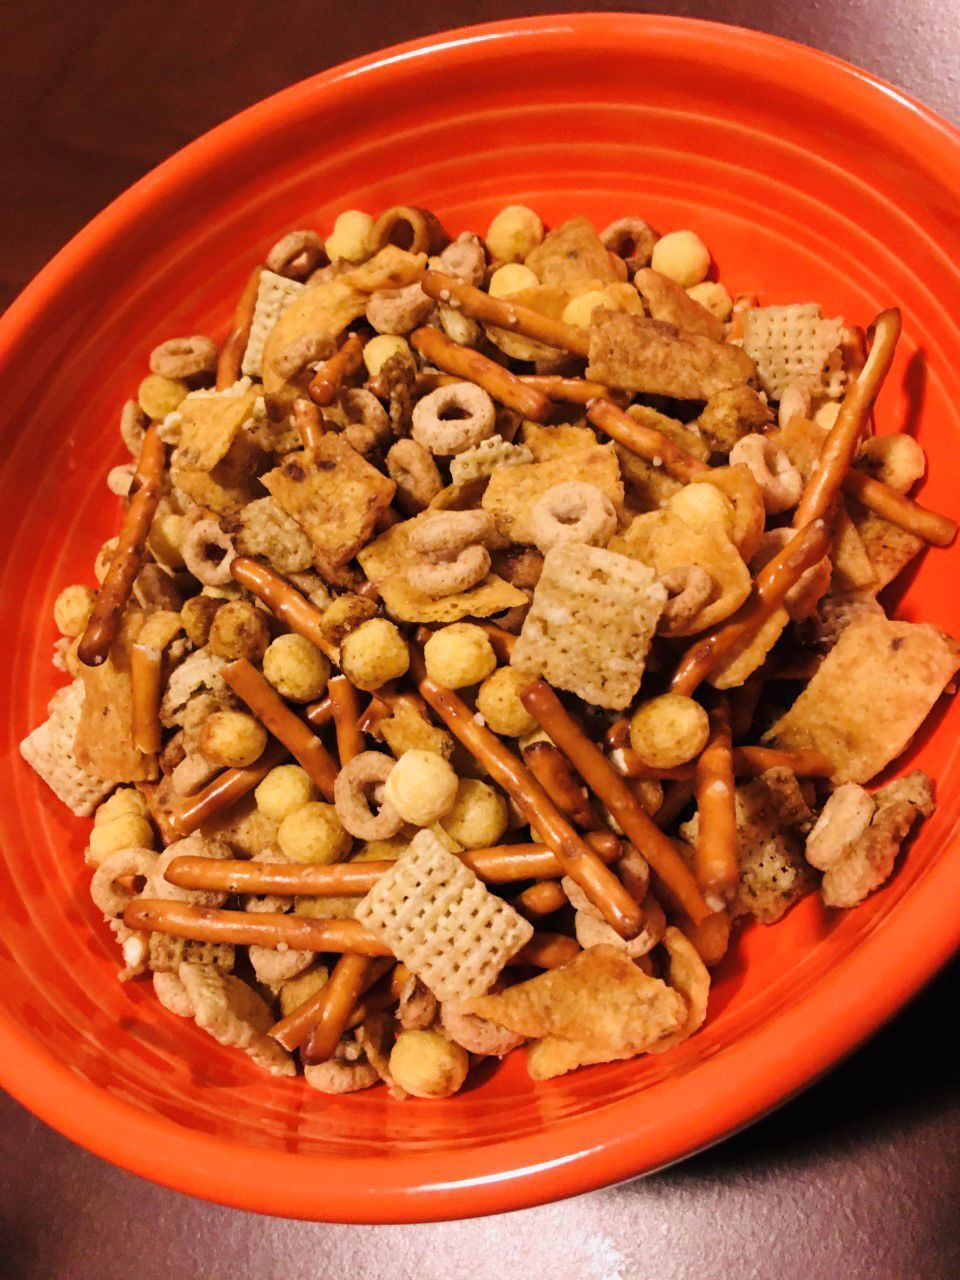 20201025-gm-chex-mix_Buckle's Cocktail Snacks 2.jpg